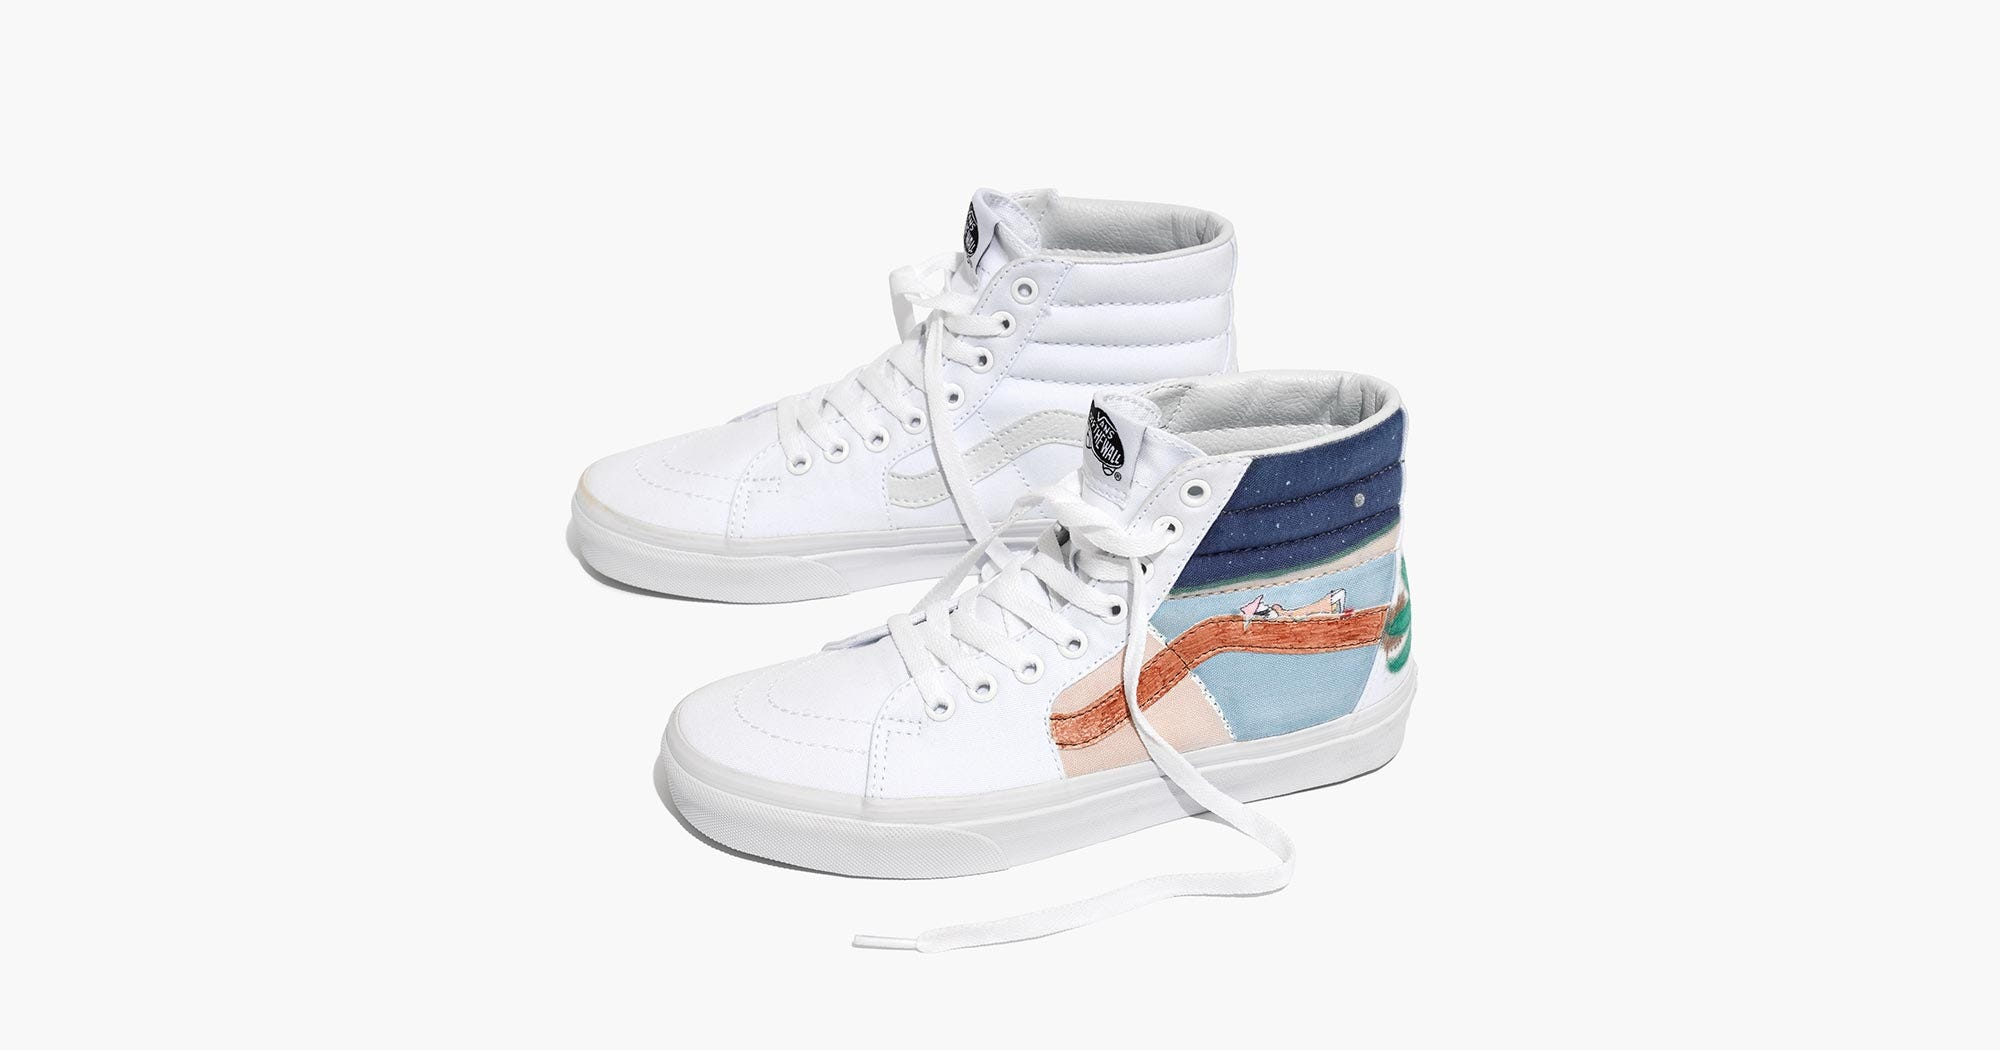 Vans Madewell Sneakers Collection New